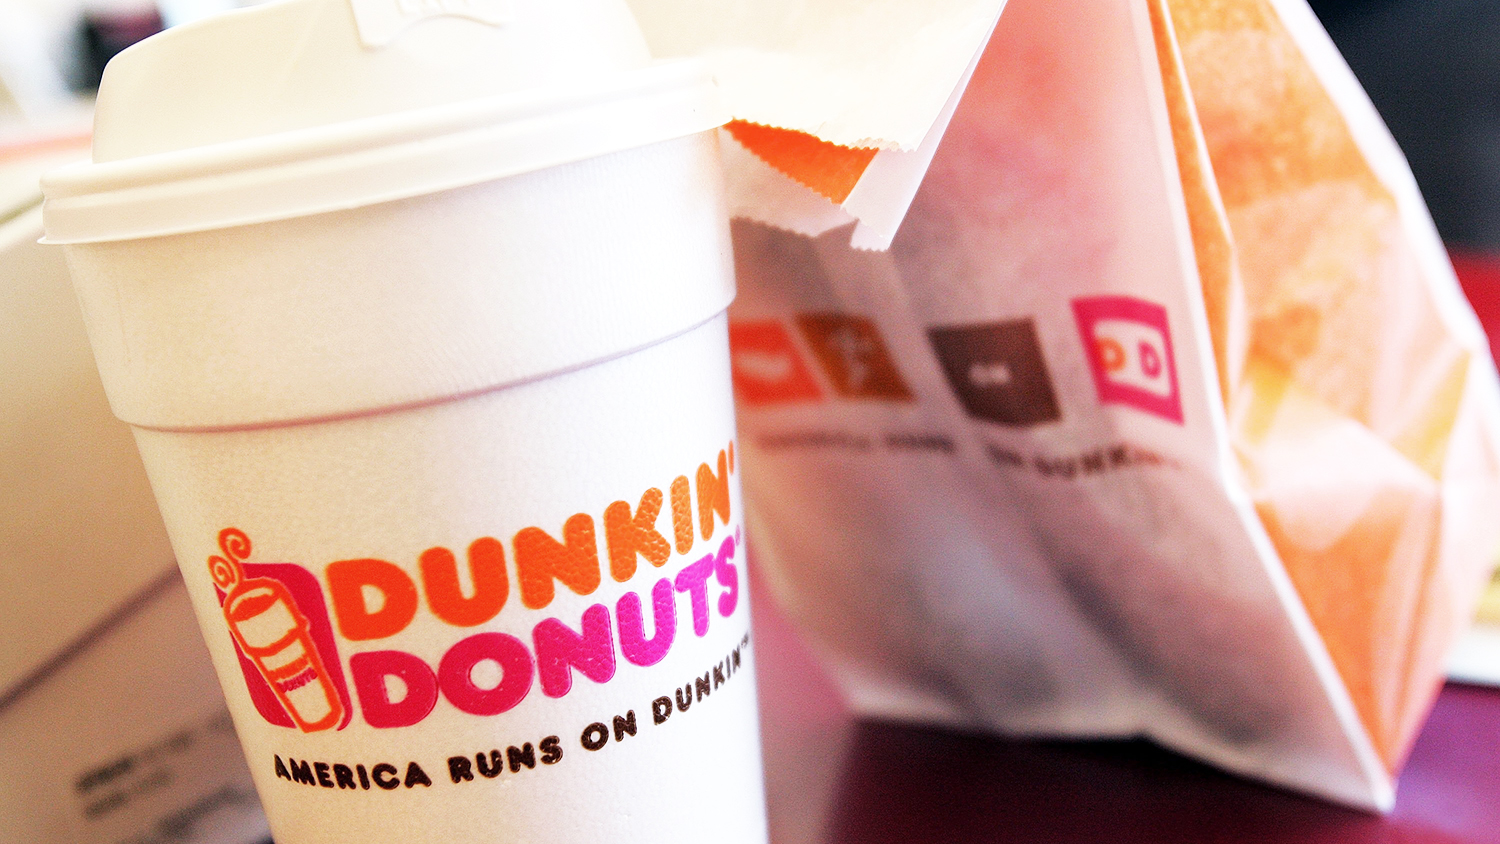 Dunkin' Donuts Adds Two-Sandwich Deals to Its Breakfast Value Menu